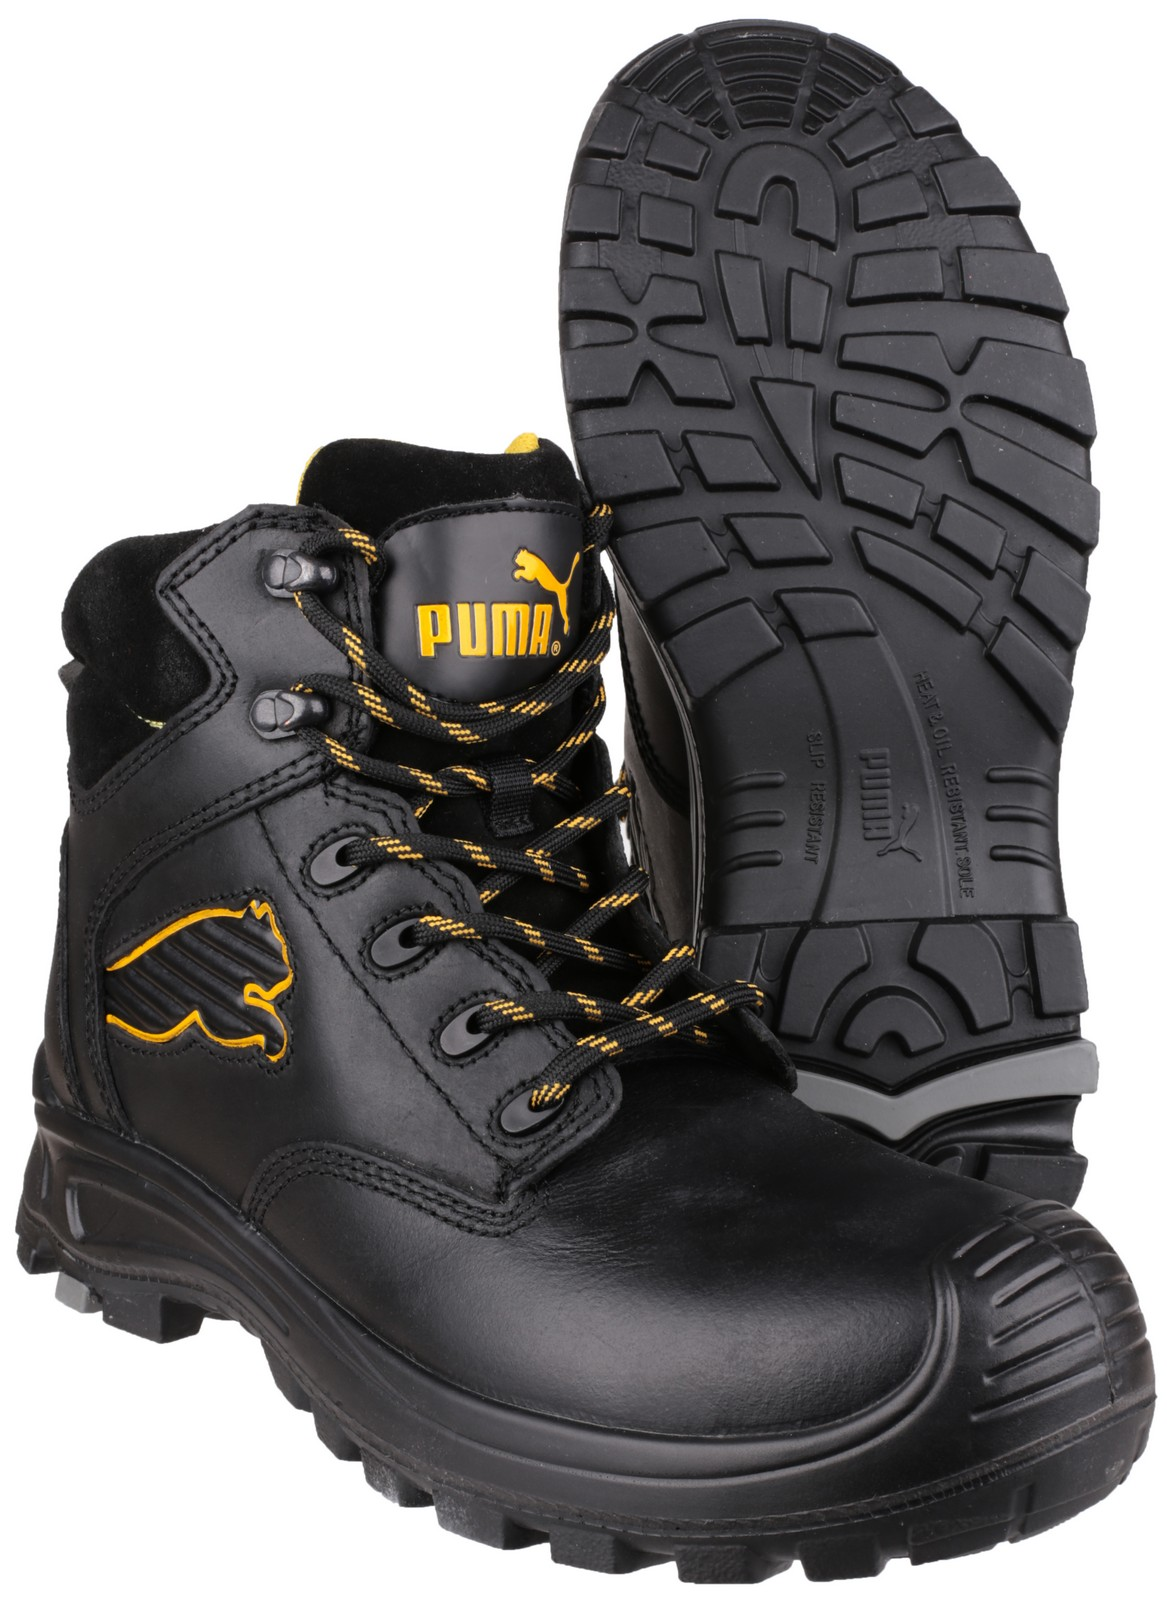 1cc7589e7d8d Puma Safety Borneo Mid Safety Footwear Boots